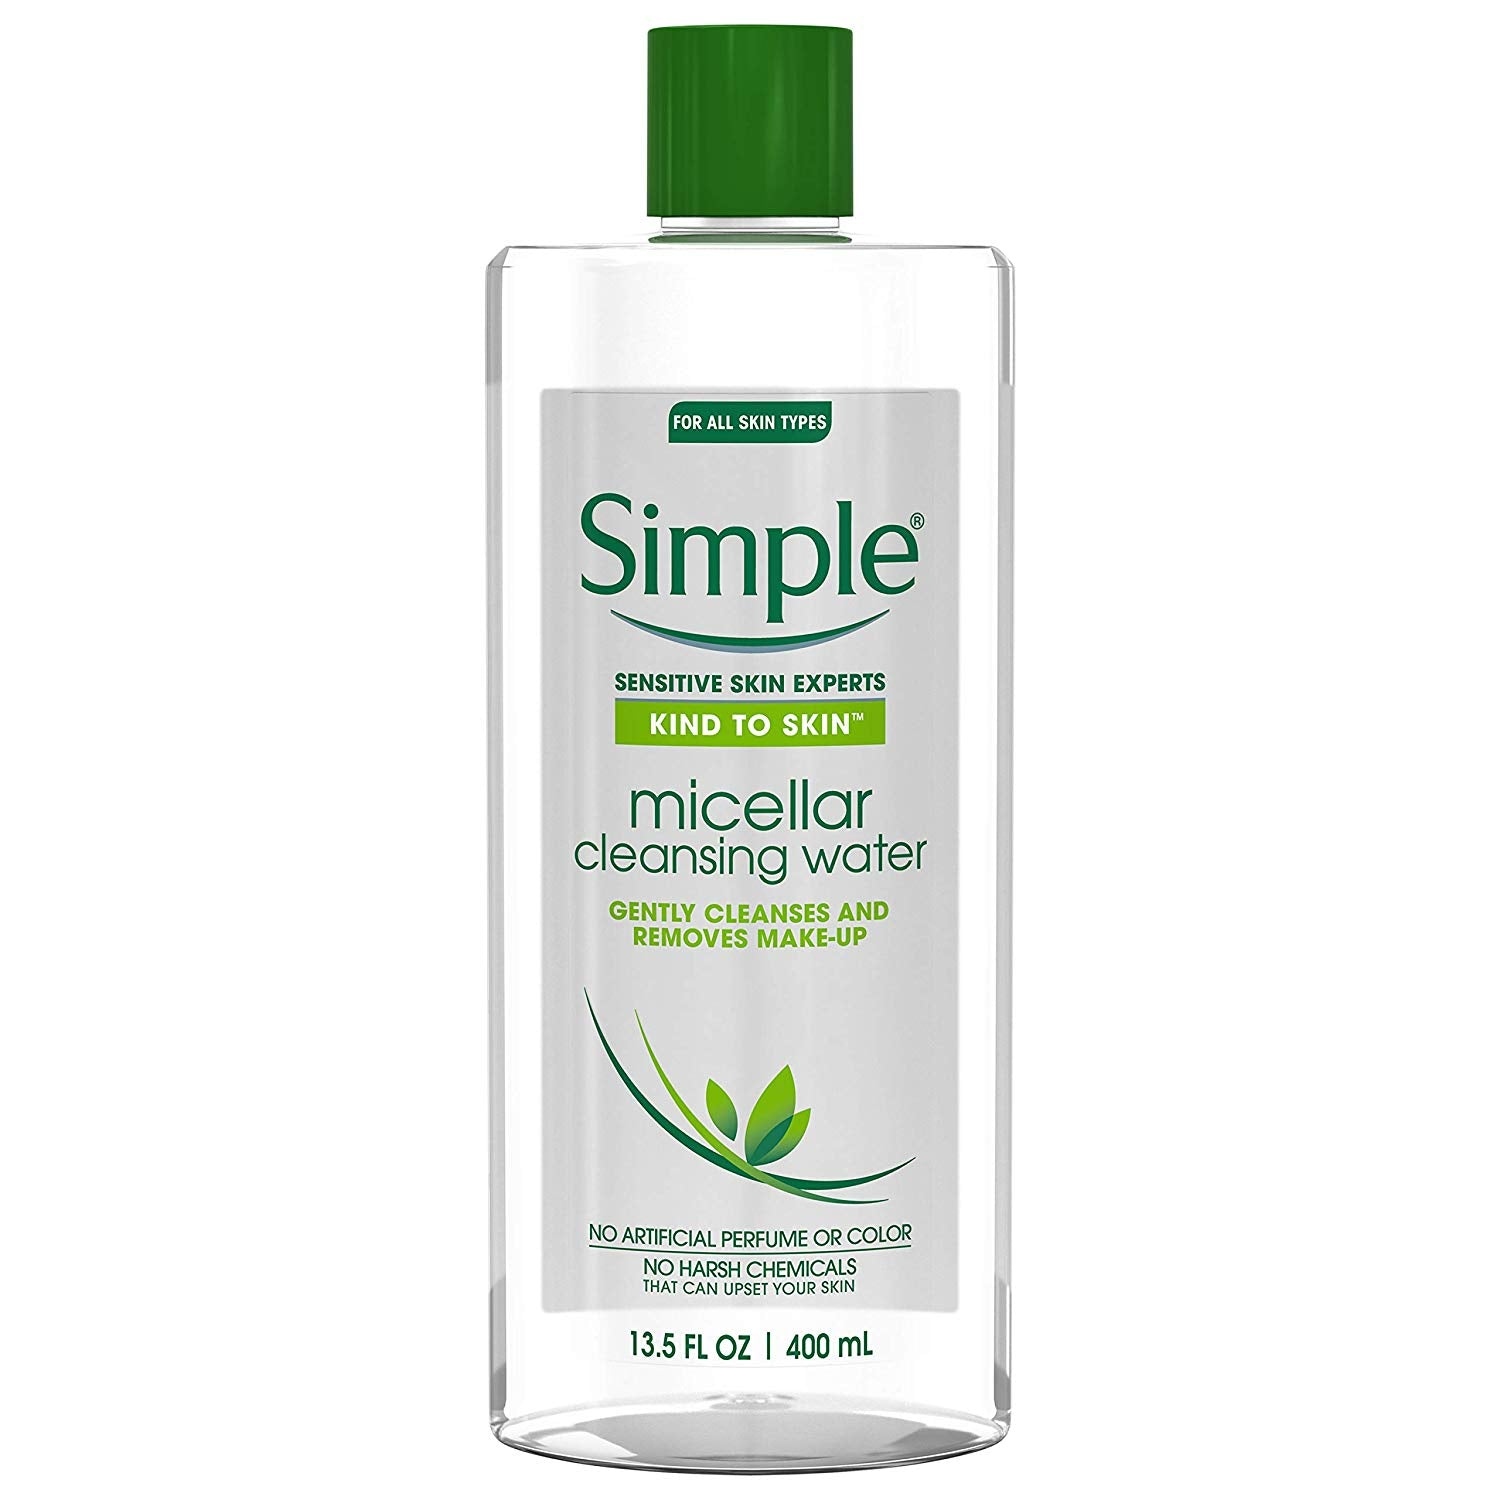 Simple Kind to Skin Cleansing Water, Micellar, 13 5 Fl Oz